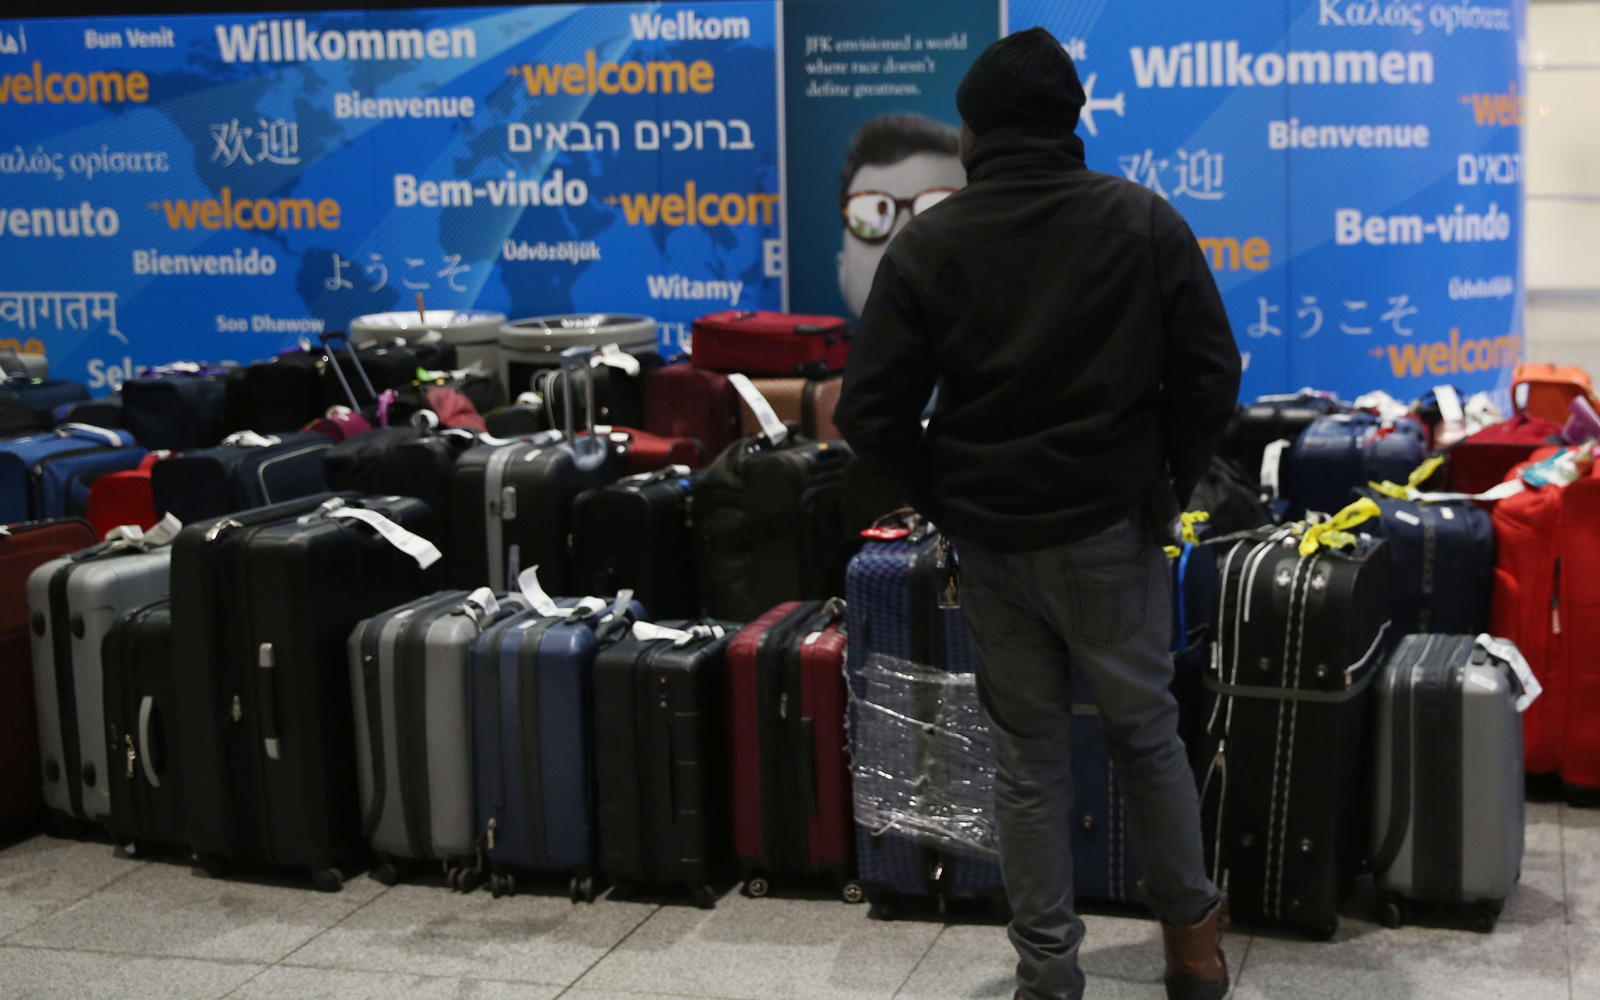 Thousands of bags were left at JFK airport after the winter storm problems.